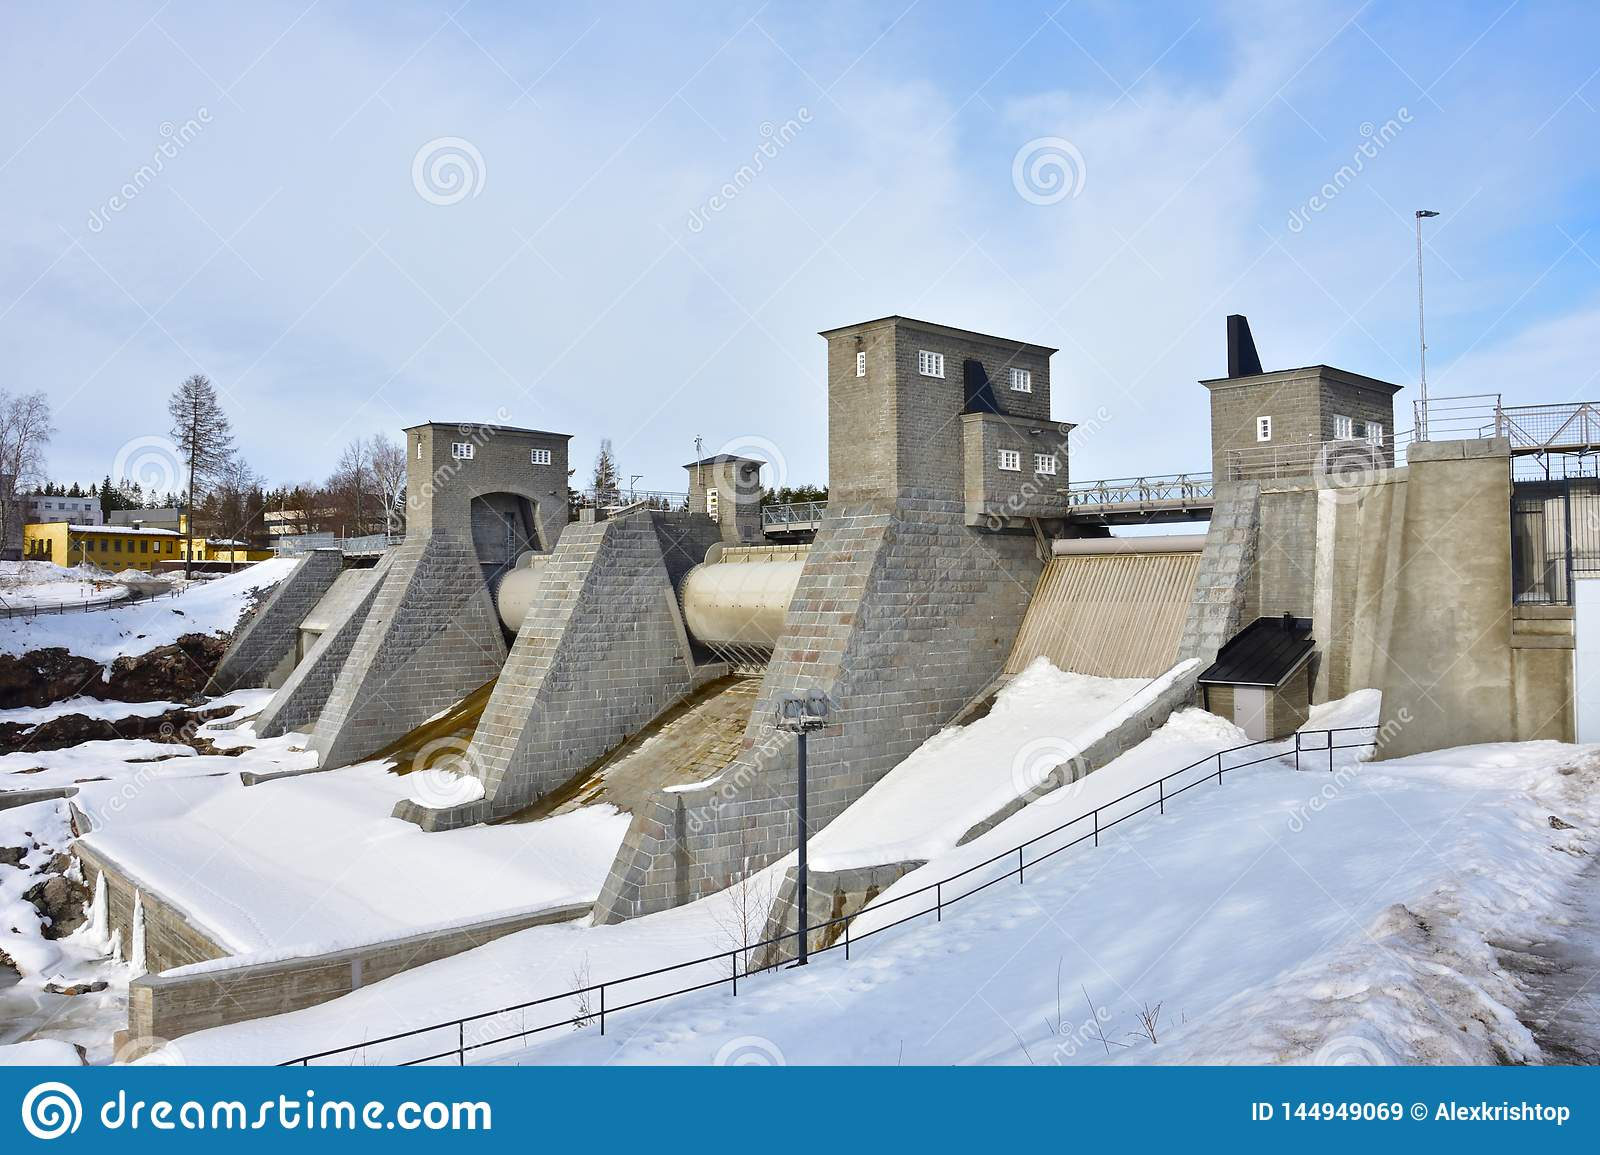 Dam of hydroelectric power plant in winter, Finland, Imatra